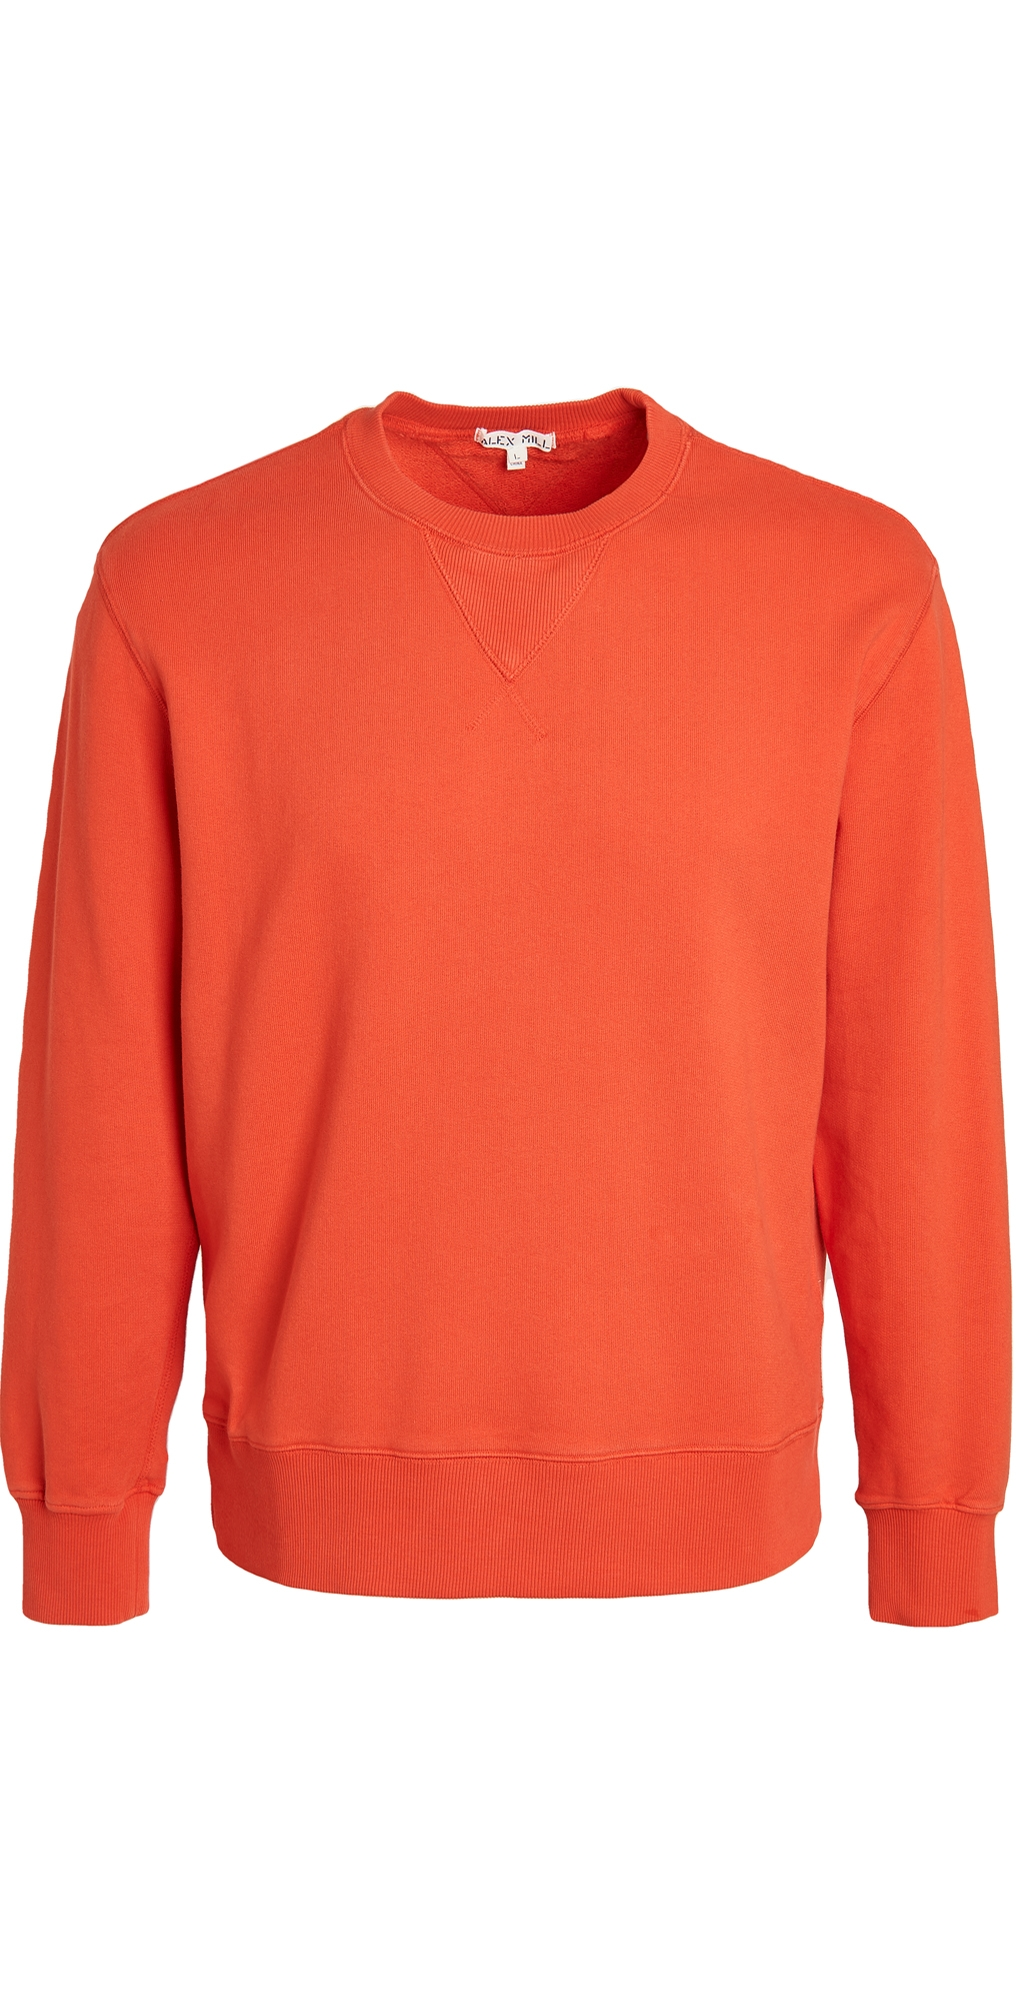 Alex Mill CREW NECK SWEATSHIRT